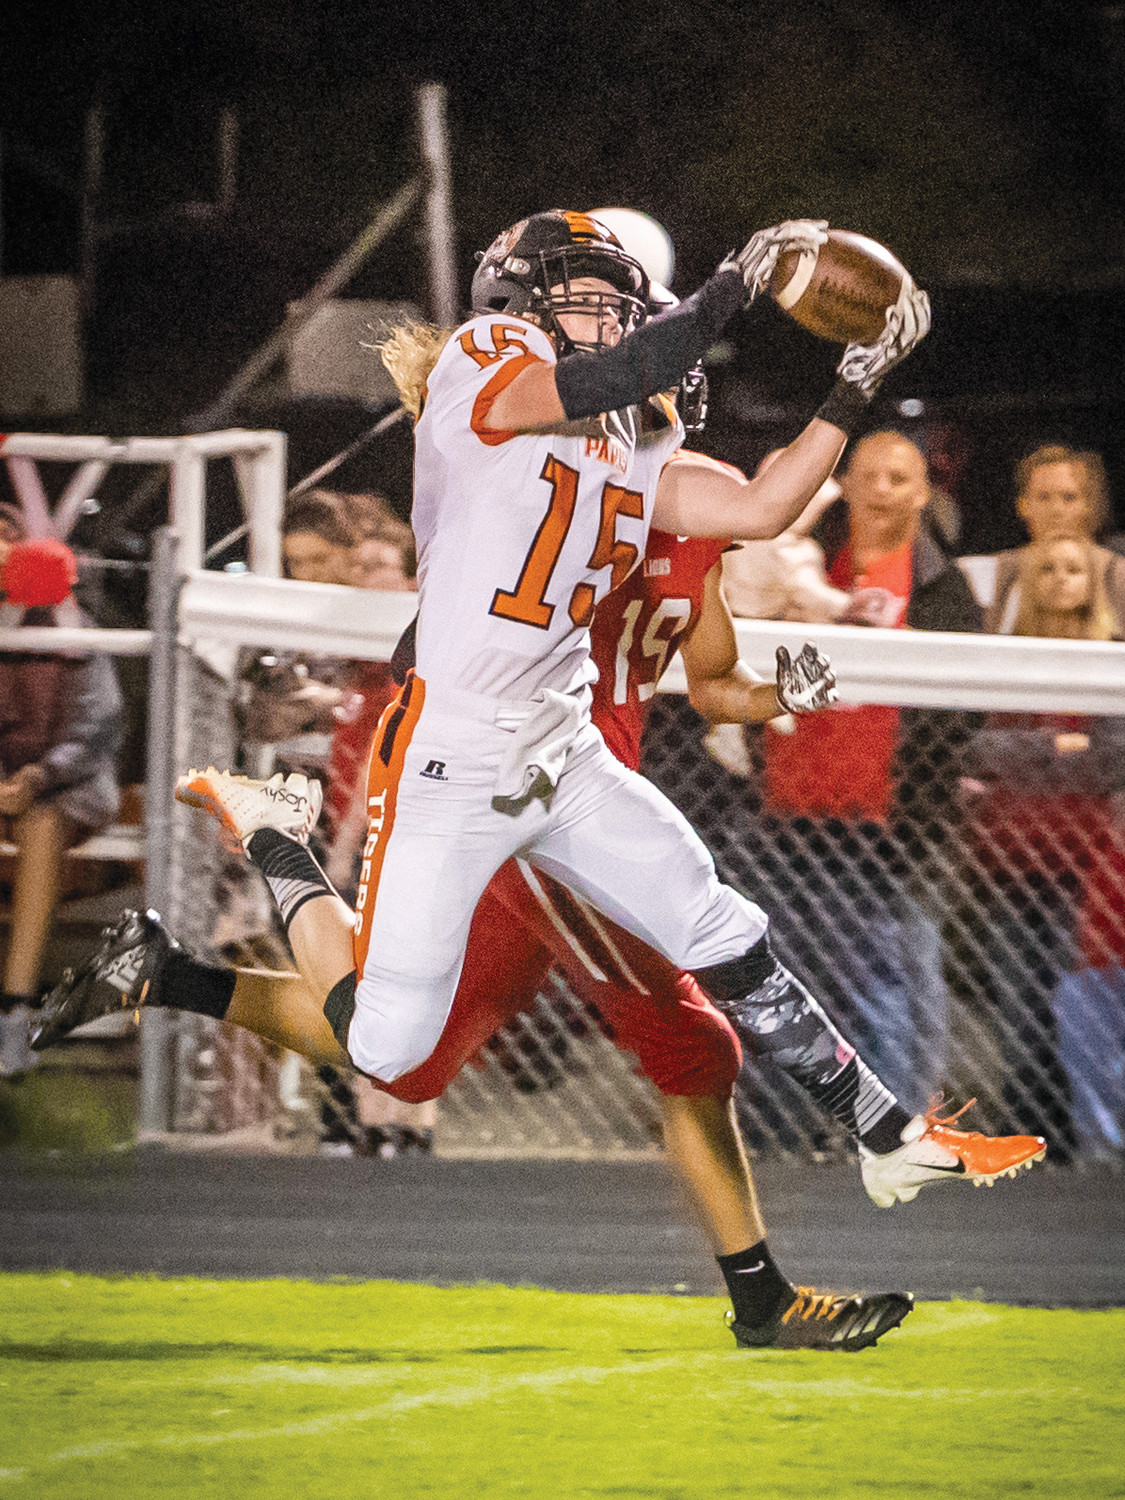 Tiger wide receiver Caleb Mullenix  outruns a defender and hauls in a pass from quarterback Caleb Gates in the Tigers big win over Marshall Friday.